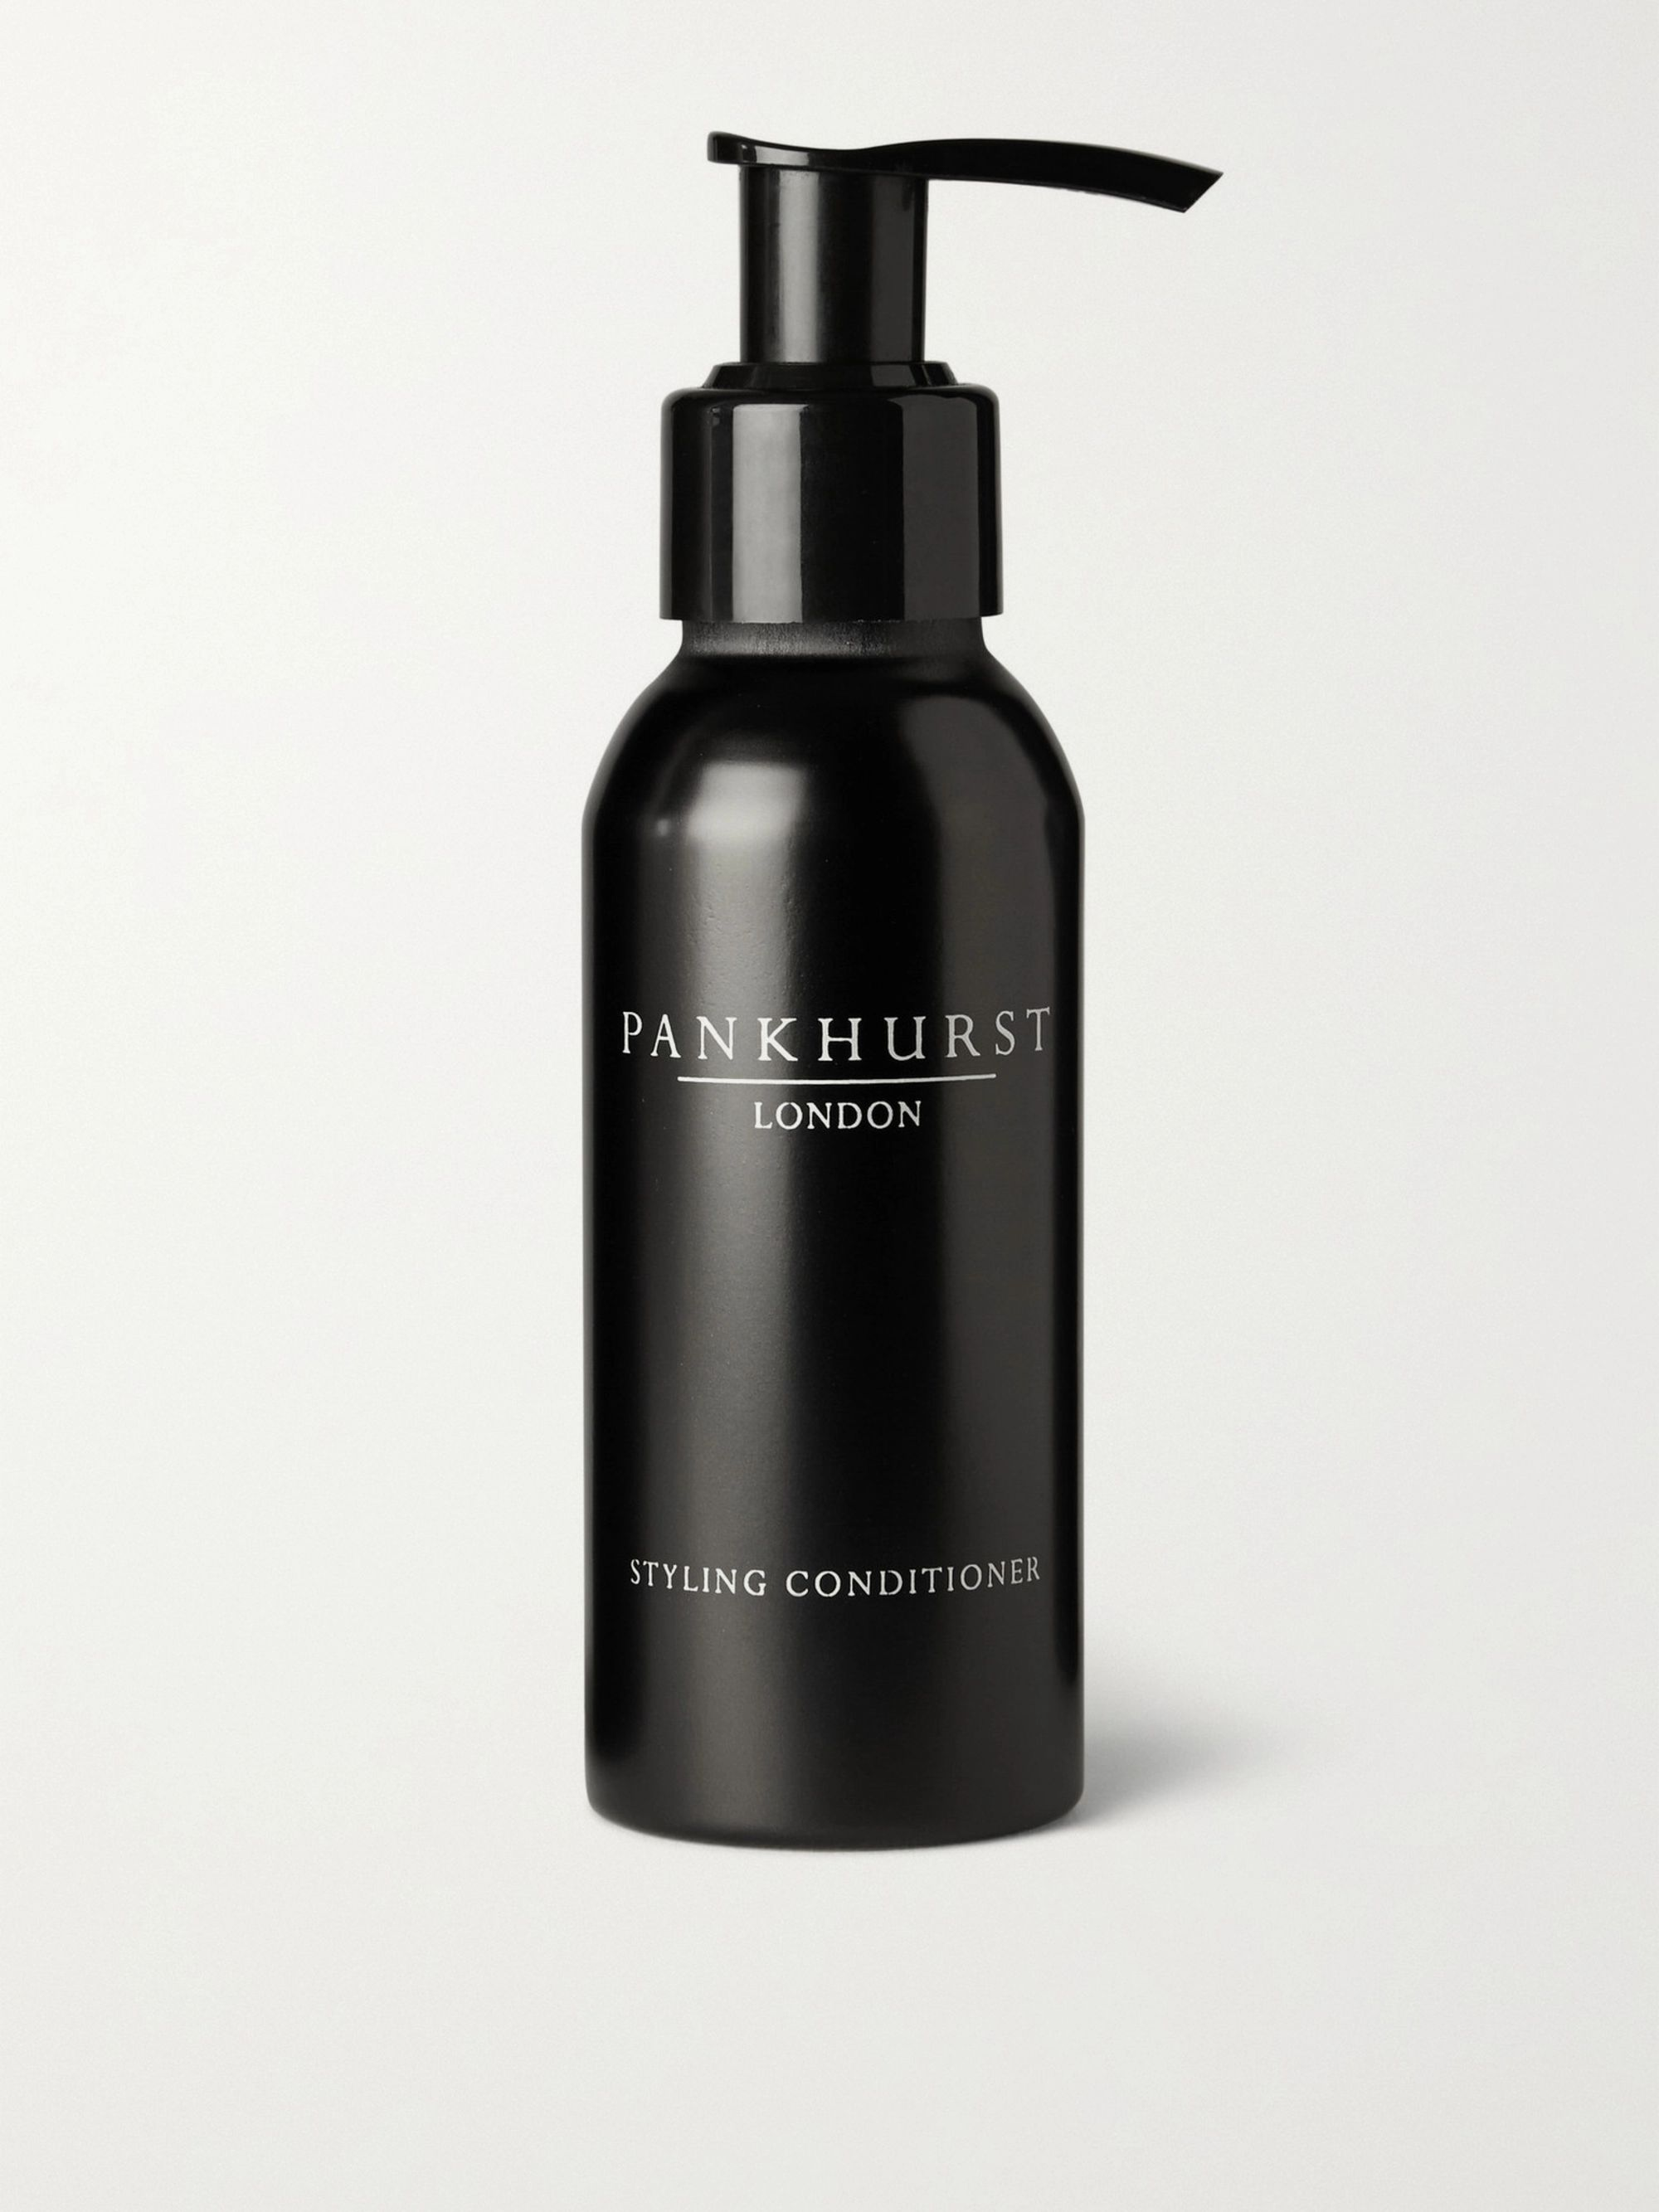 Pankhurst London Leave-In Styling Conditioner, 100ml